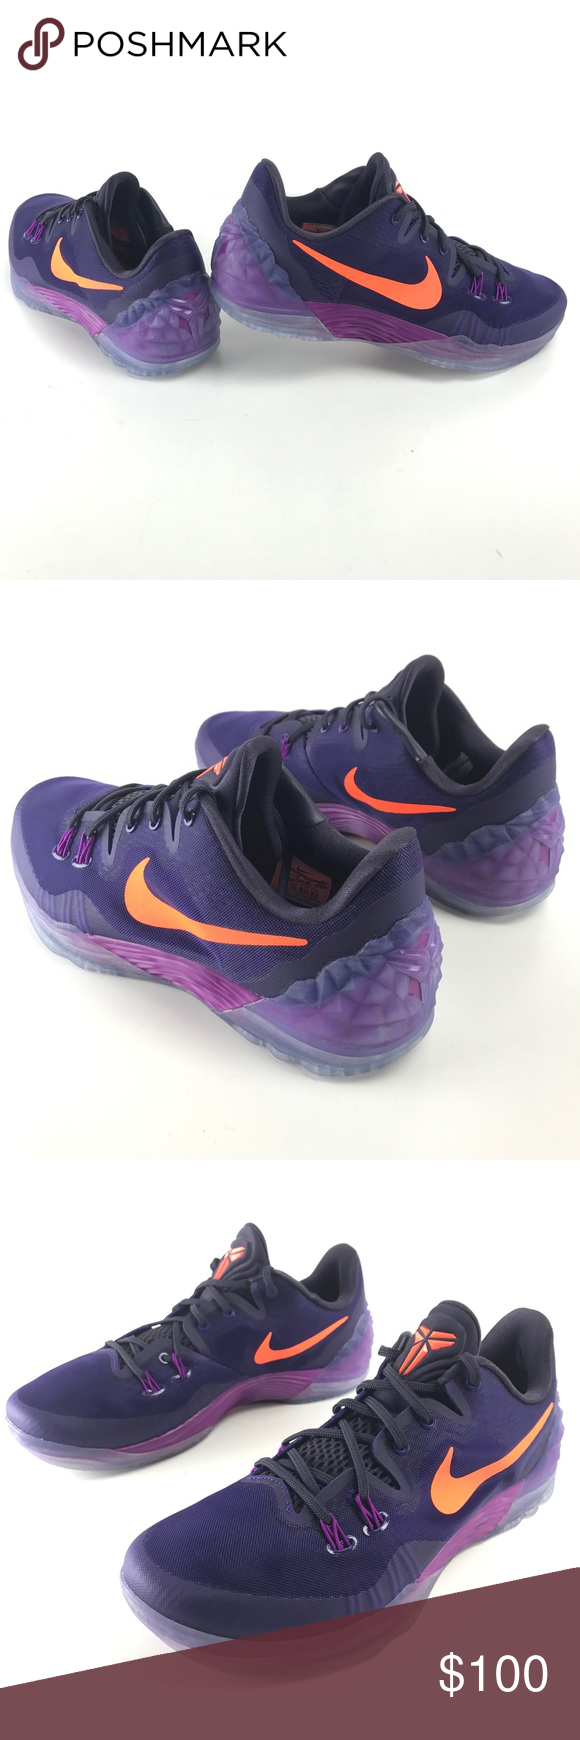 the best attitude 2ce76 713c7 Nike Zoom Kobe Venomenon 5 Purple Basketball Shoes New Nike Zoom Kobe  Venomenon 5 Purple Basketball Shoes Style  749884-585 Available Sizes  11US, 10UK, ...